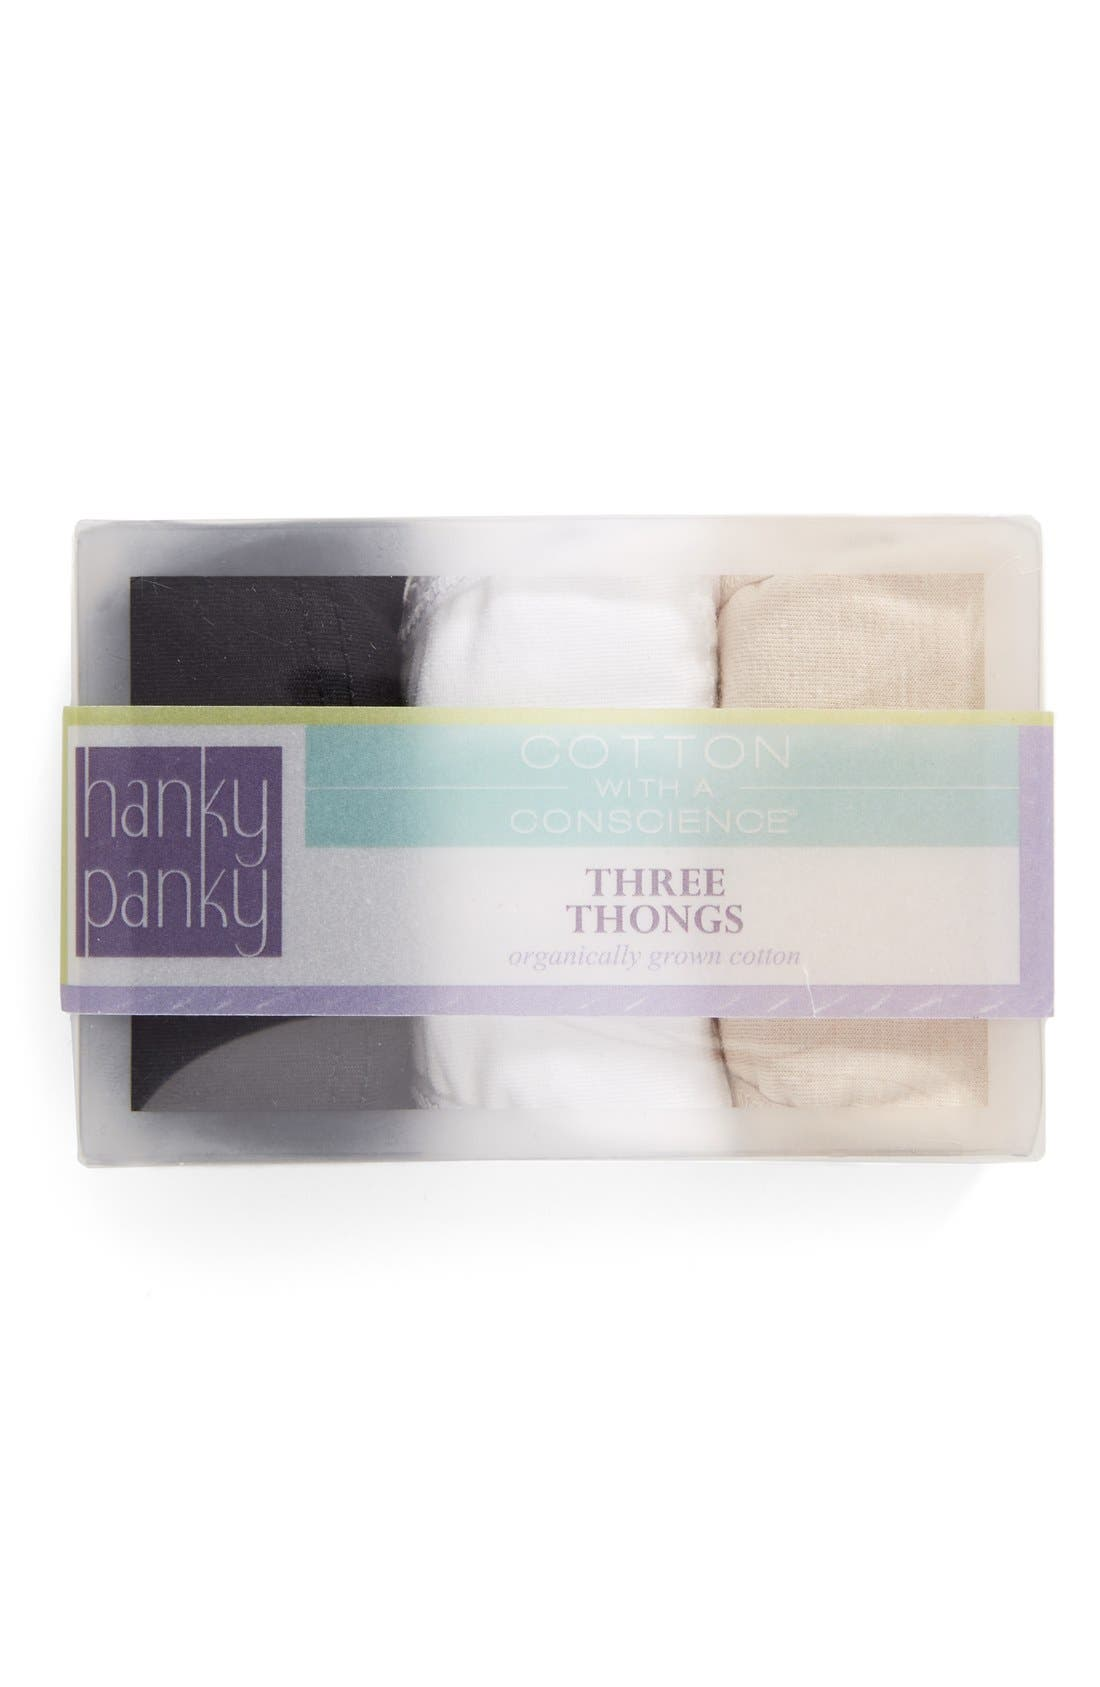 Alternate Image 1 Selected - Hanky Panky Original Rise Thong (3-Pack)